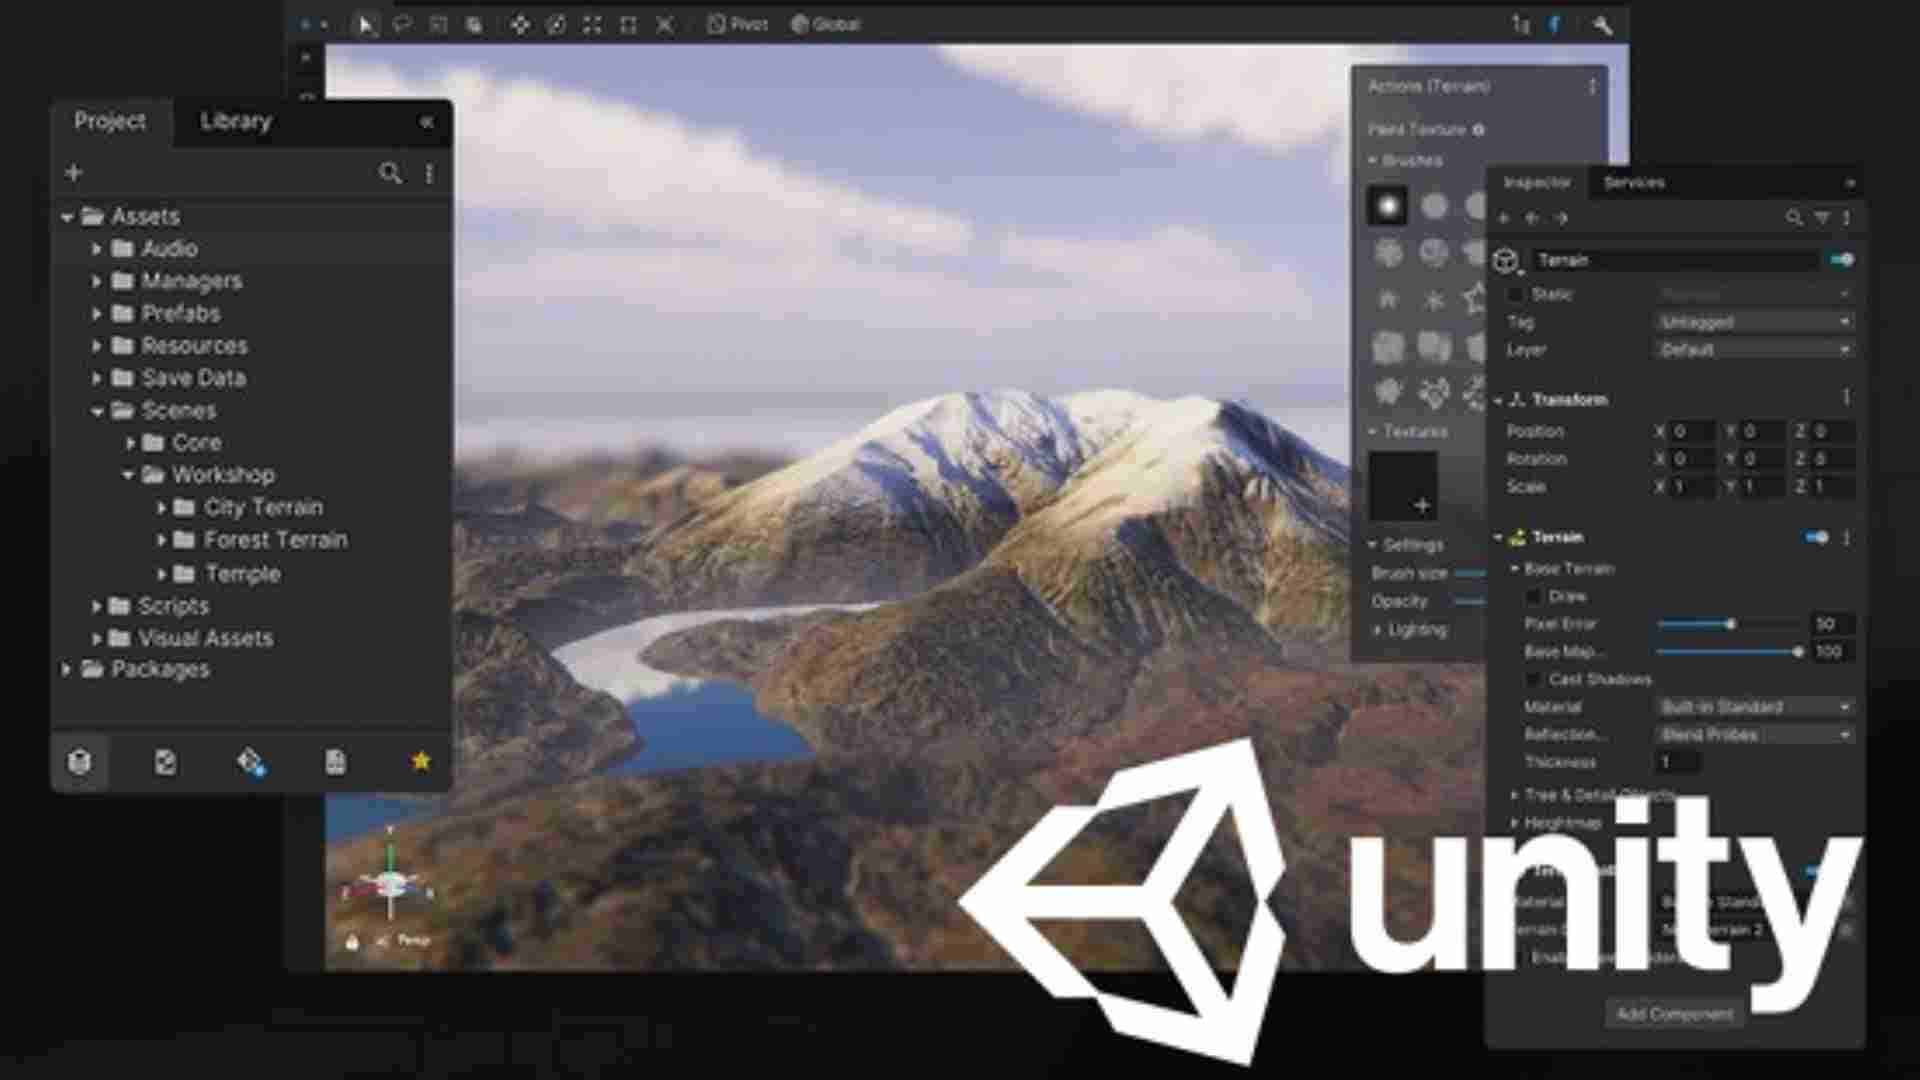 Screenshot from Unity - Animation software